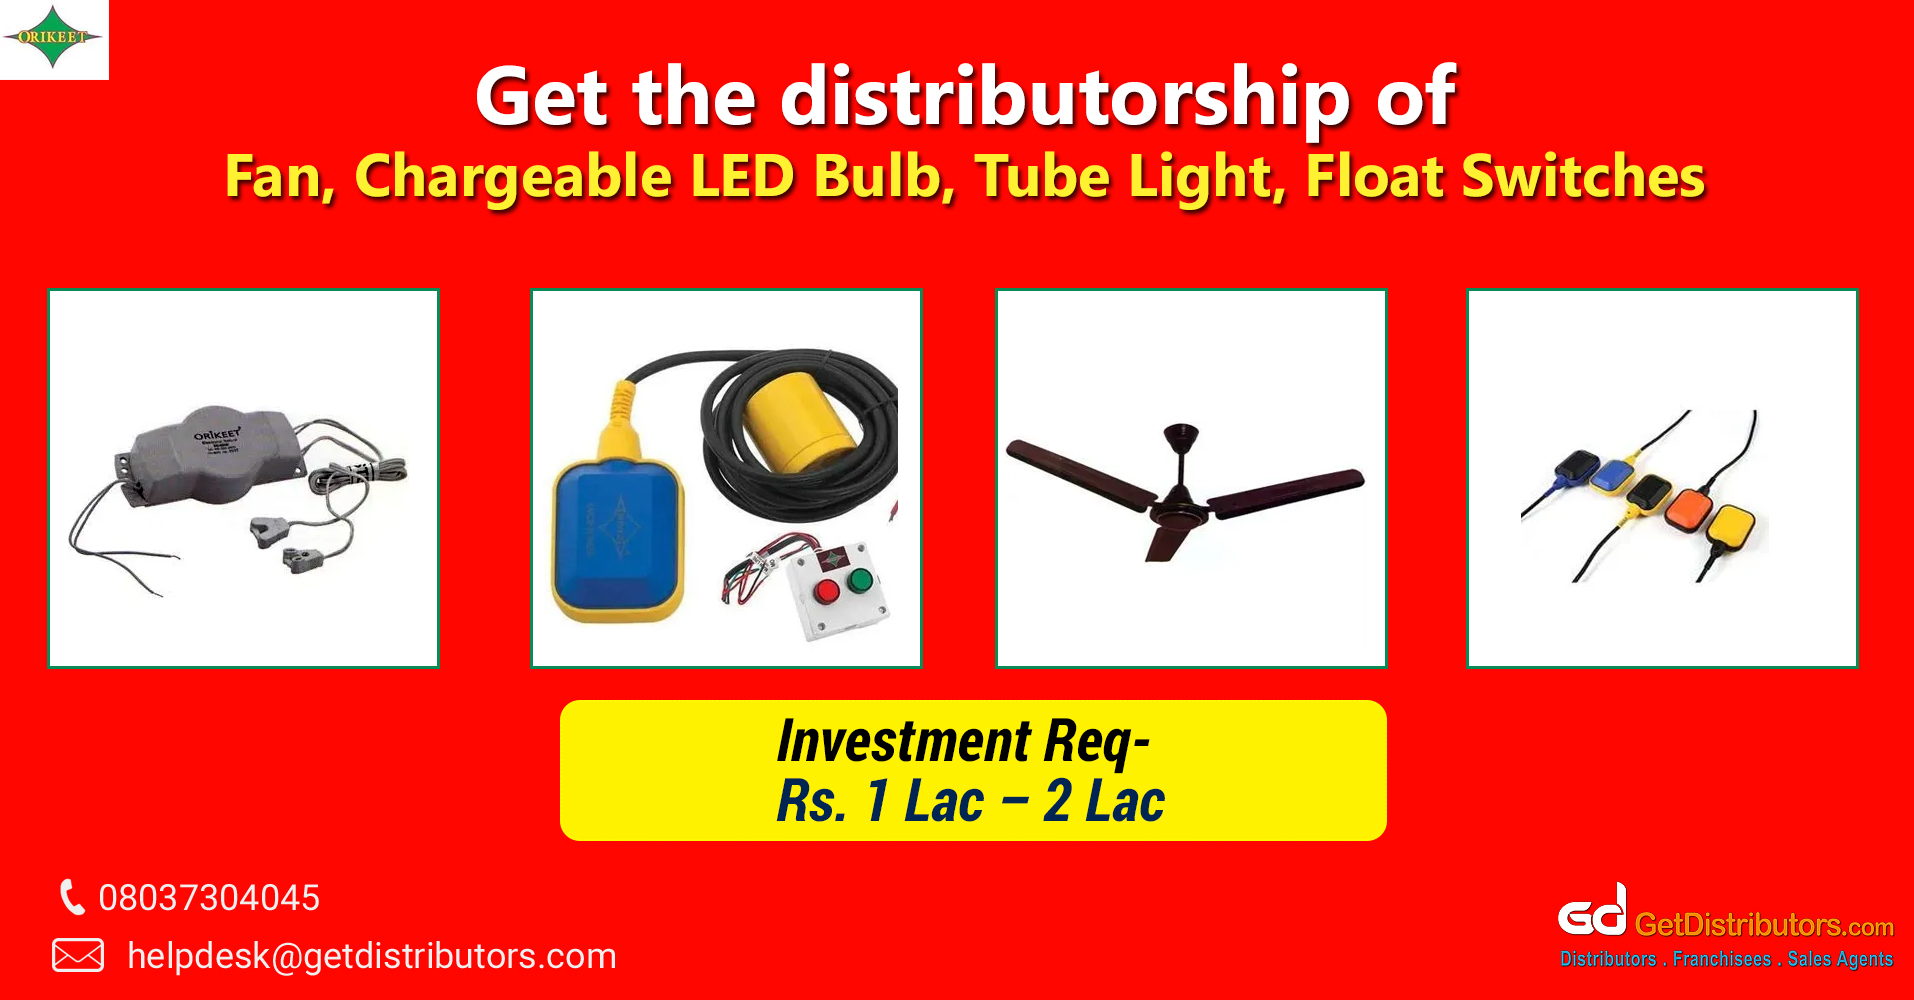 Extensive array of electronic items and supplies for distribution